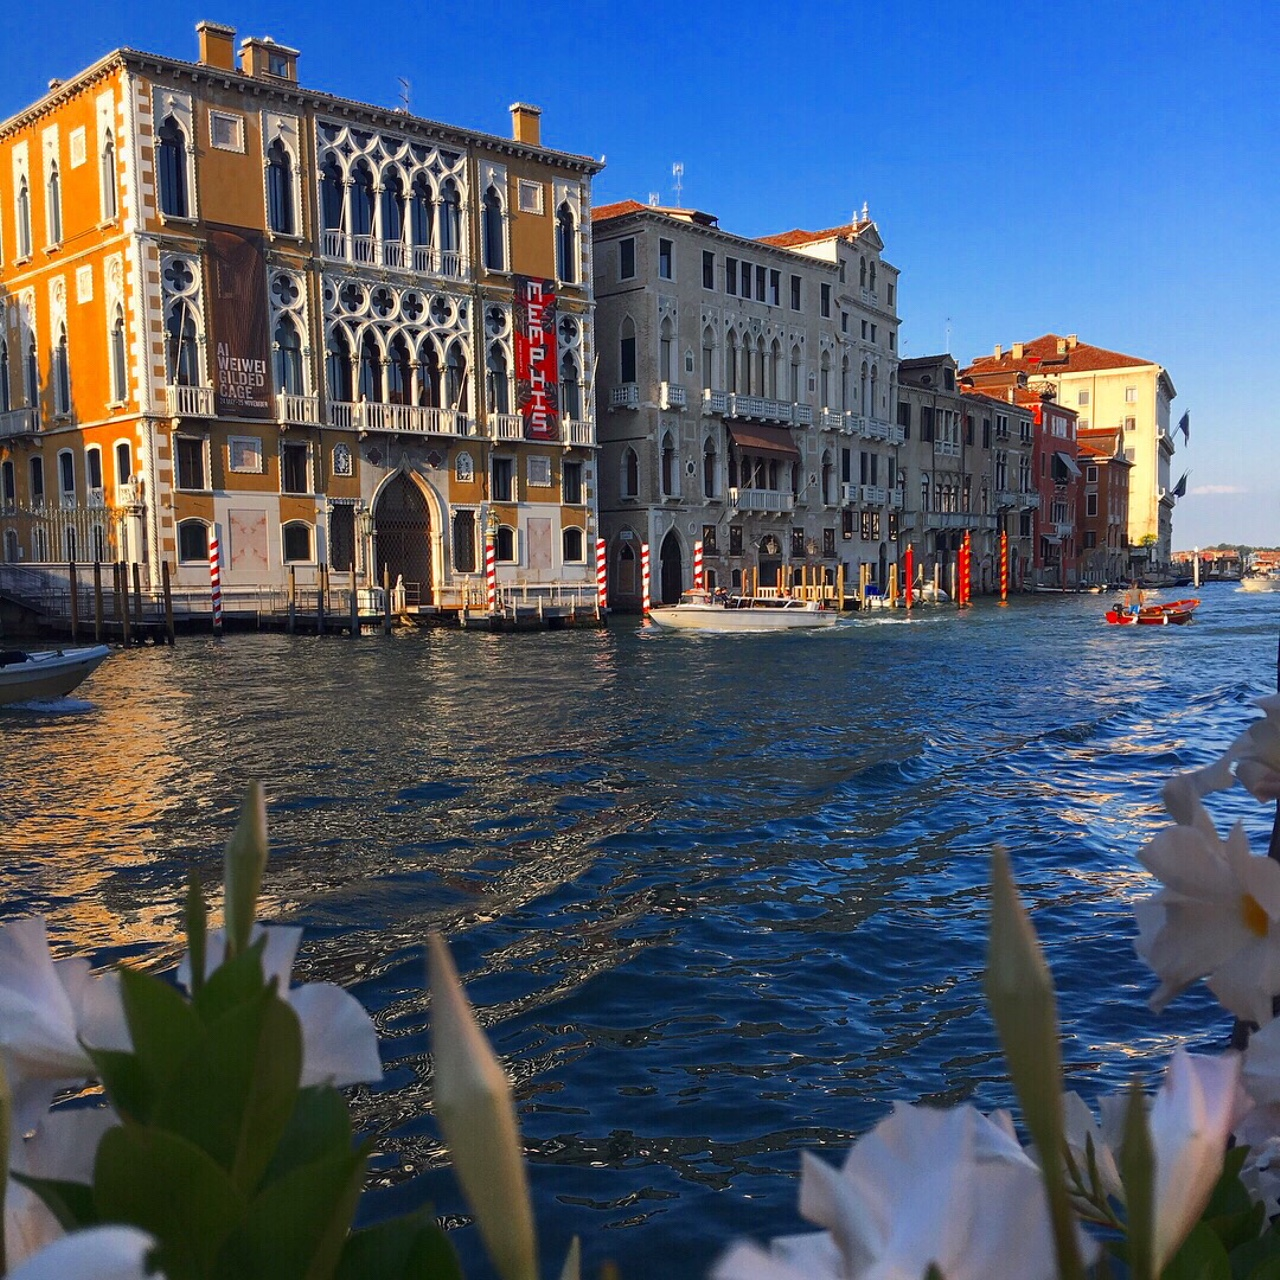 Grand Canal venice in the late afternoon. If you could fly anywhere in the world where would you go?